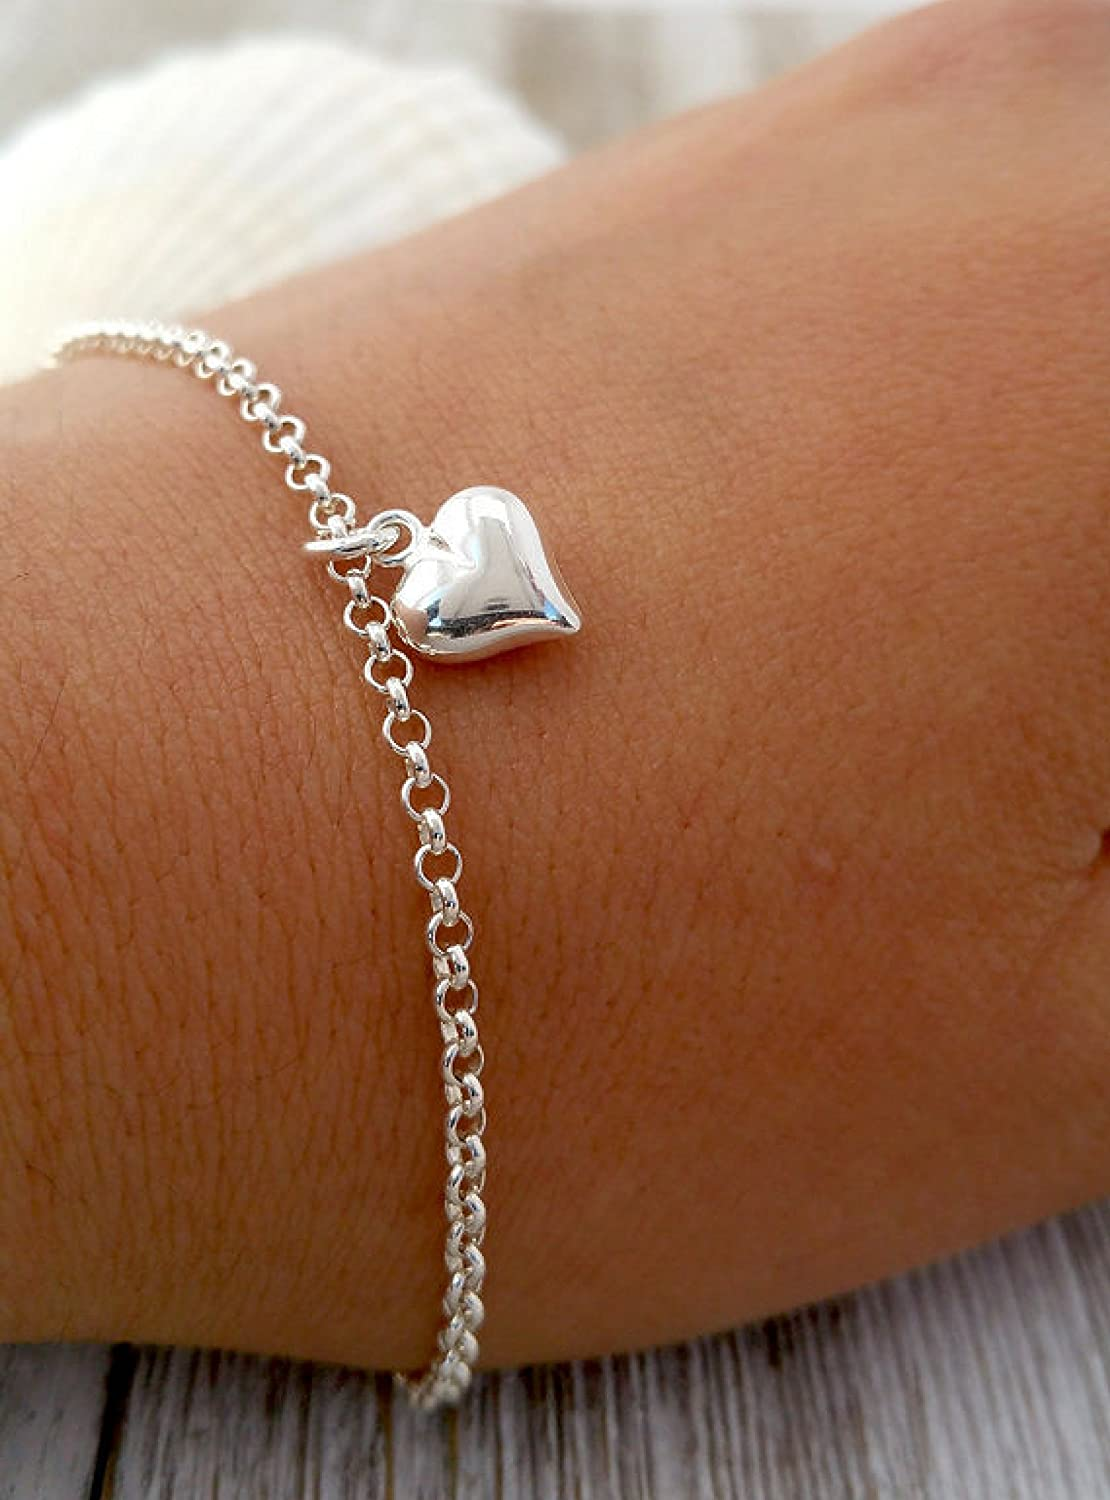 Sterling Silver Heart Charm Bracelet 925 Thin Chain Silver puffy heart Bracelet Love Bracelet Simple Silver Bracelet Dainty Heart Bracelet